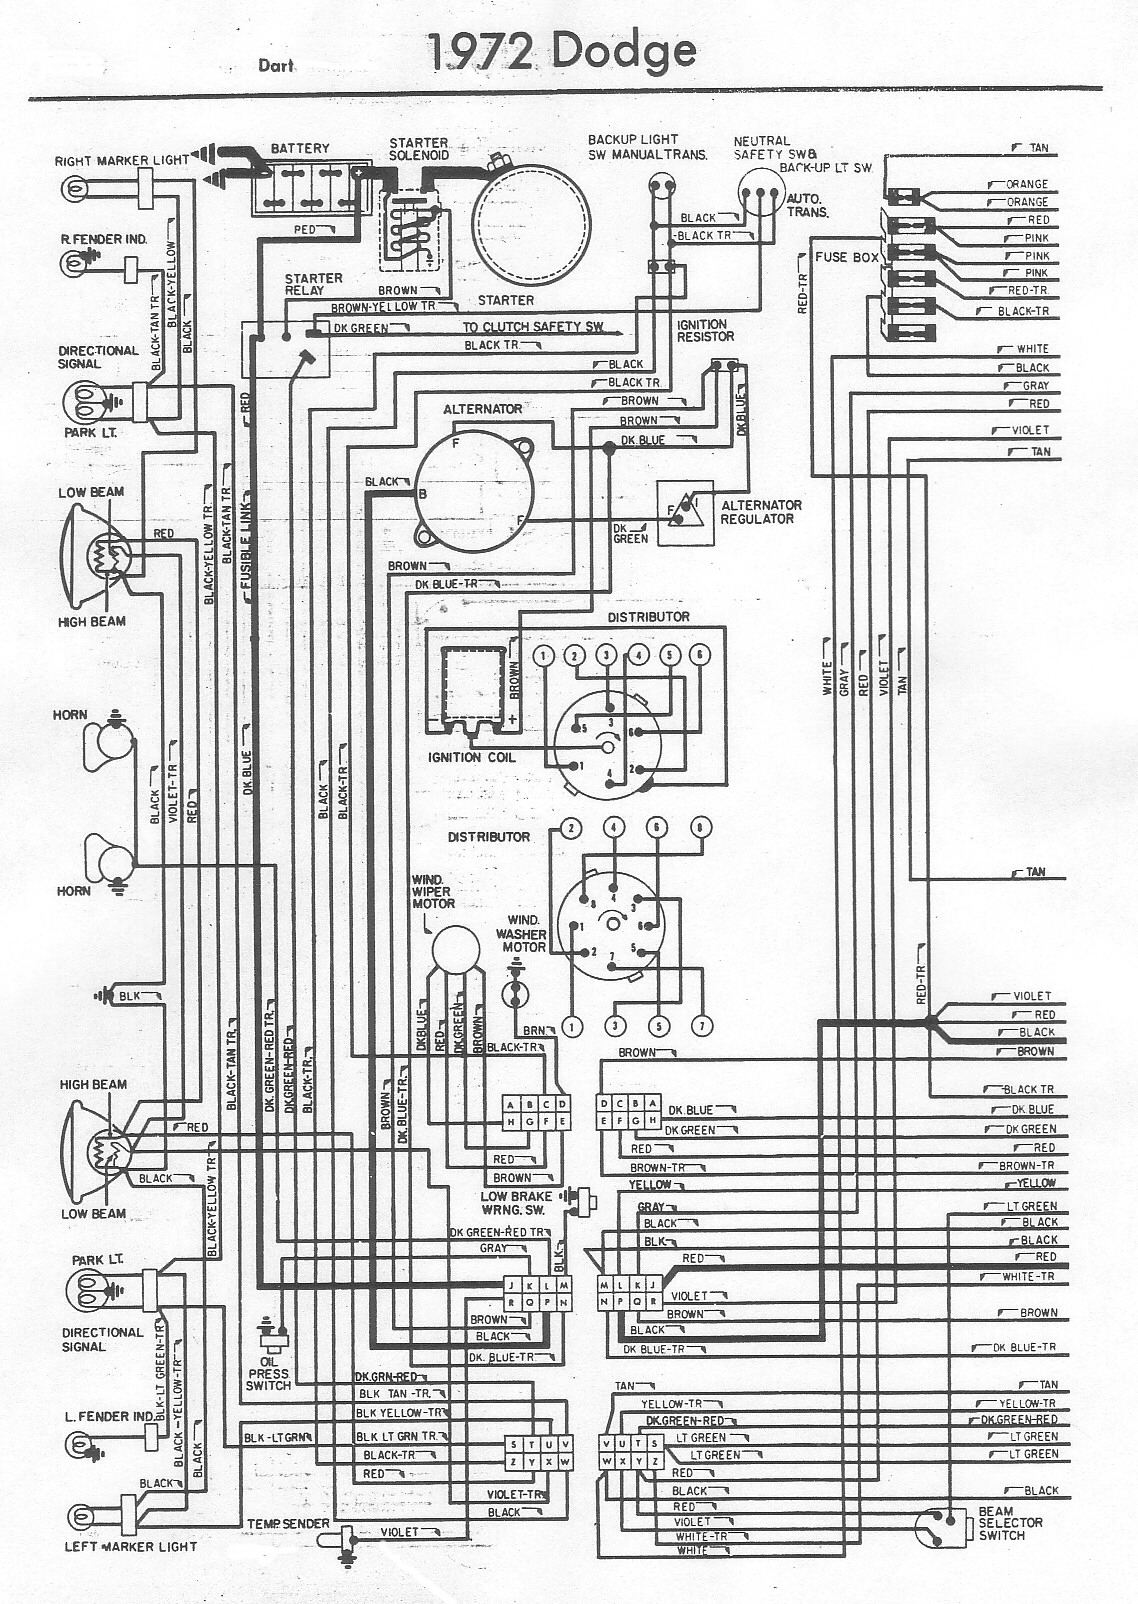 1970 dodge truck wiring diagrams most searched wiring diagram